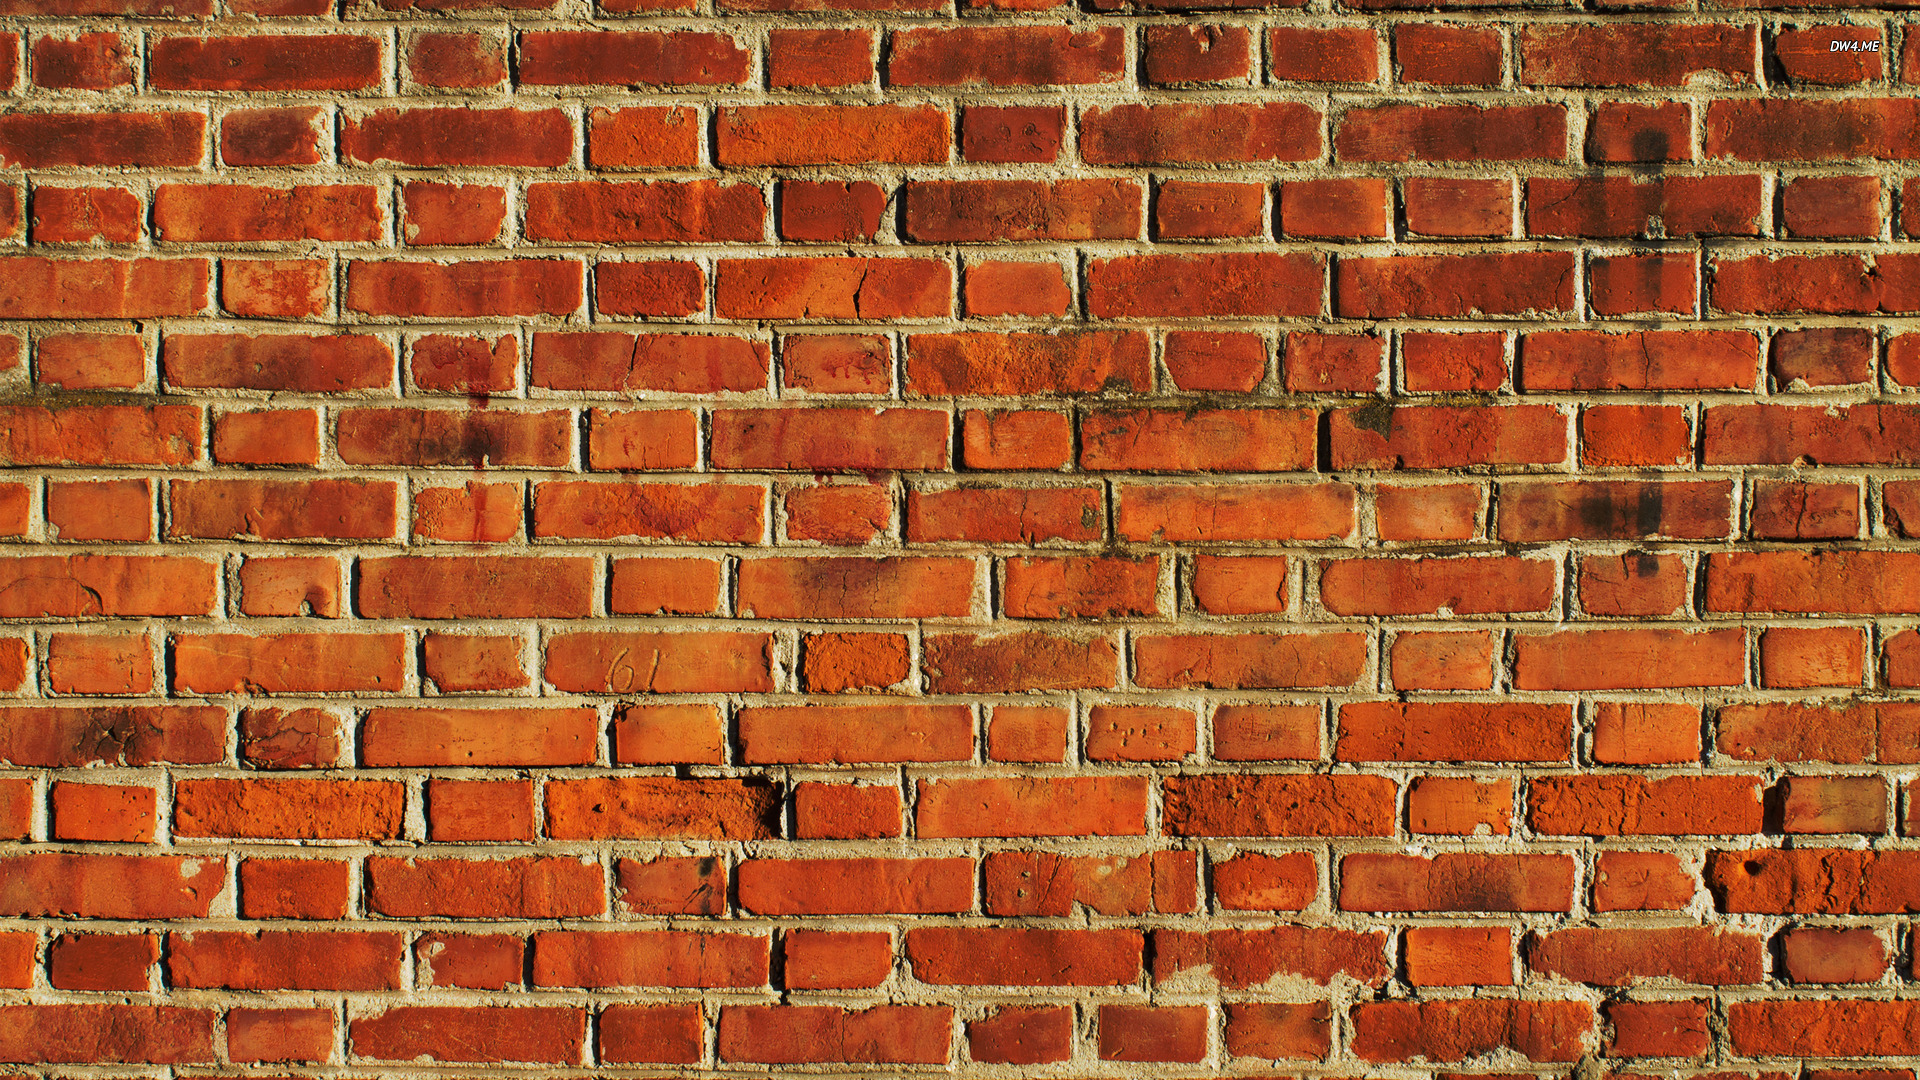 Wall Printable Images Gallery Category Page 1